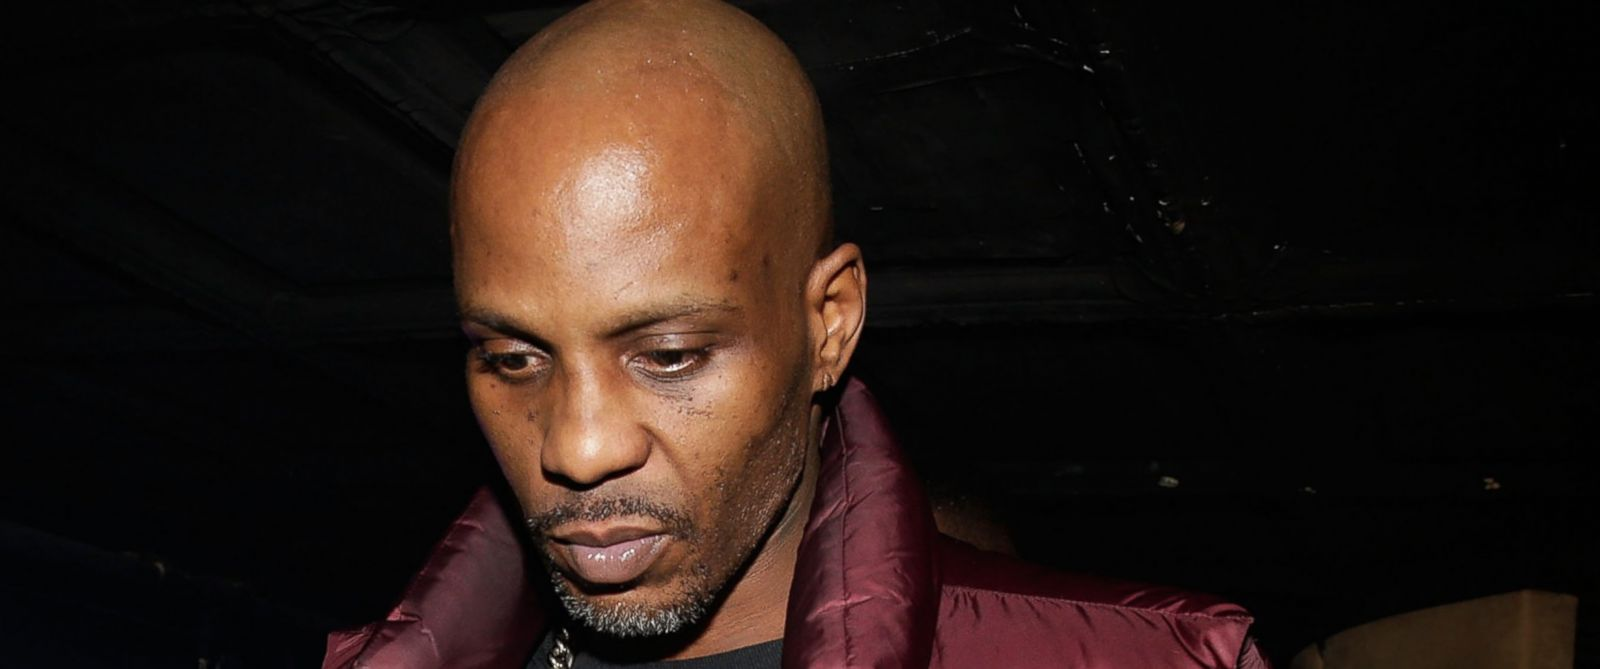 PHOTO: DMX at Haus on Jan. 31, 2016 in New York City.